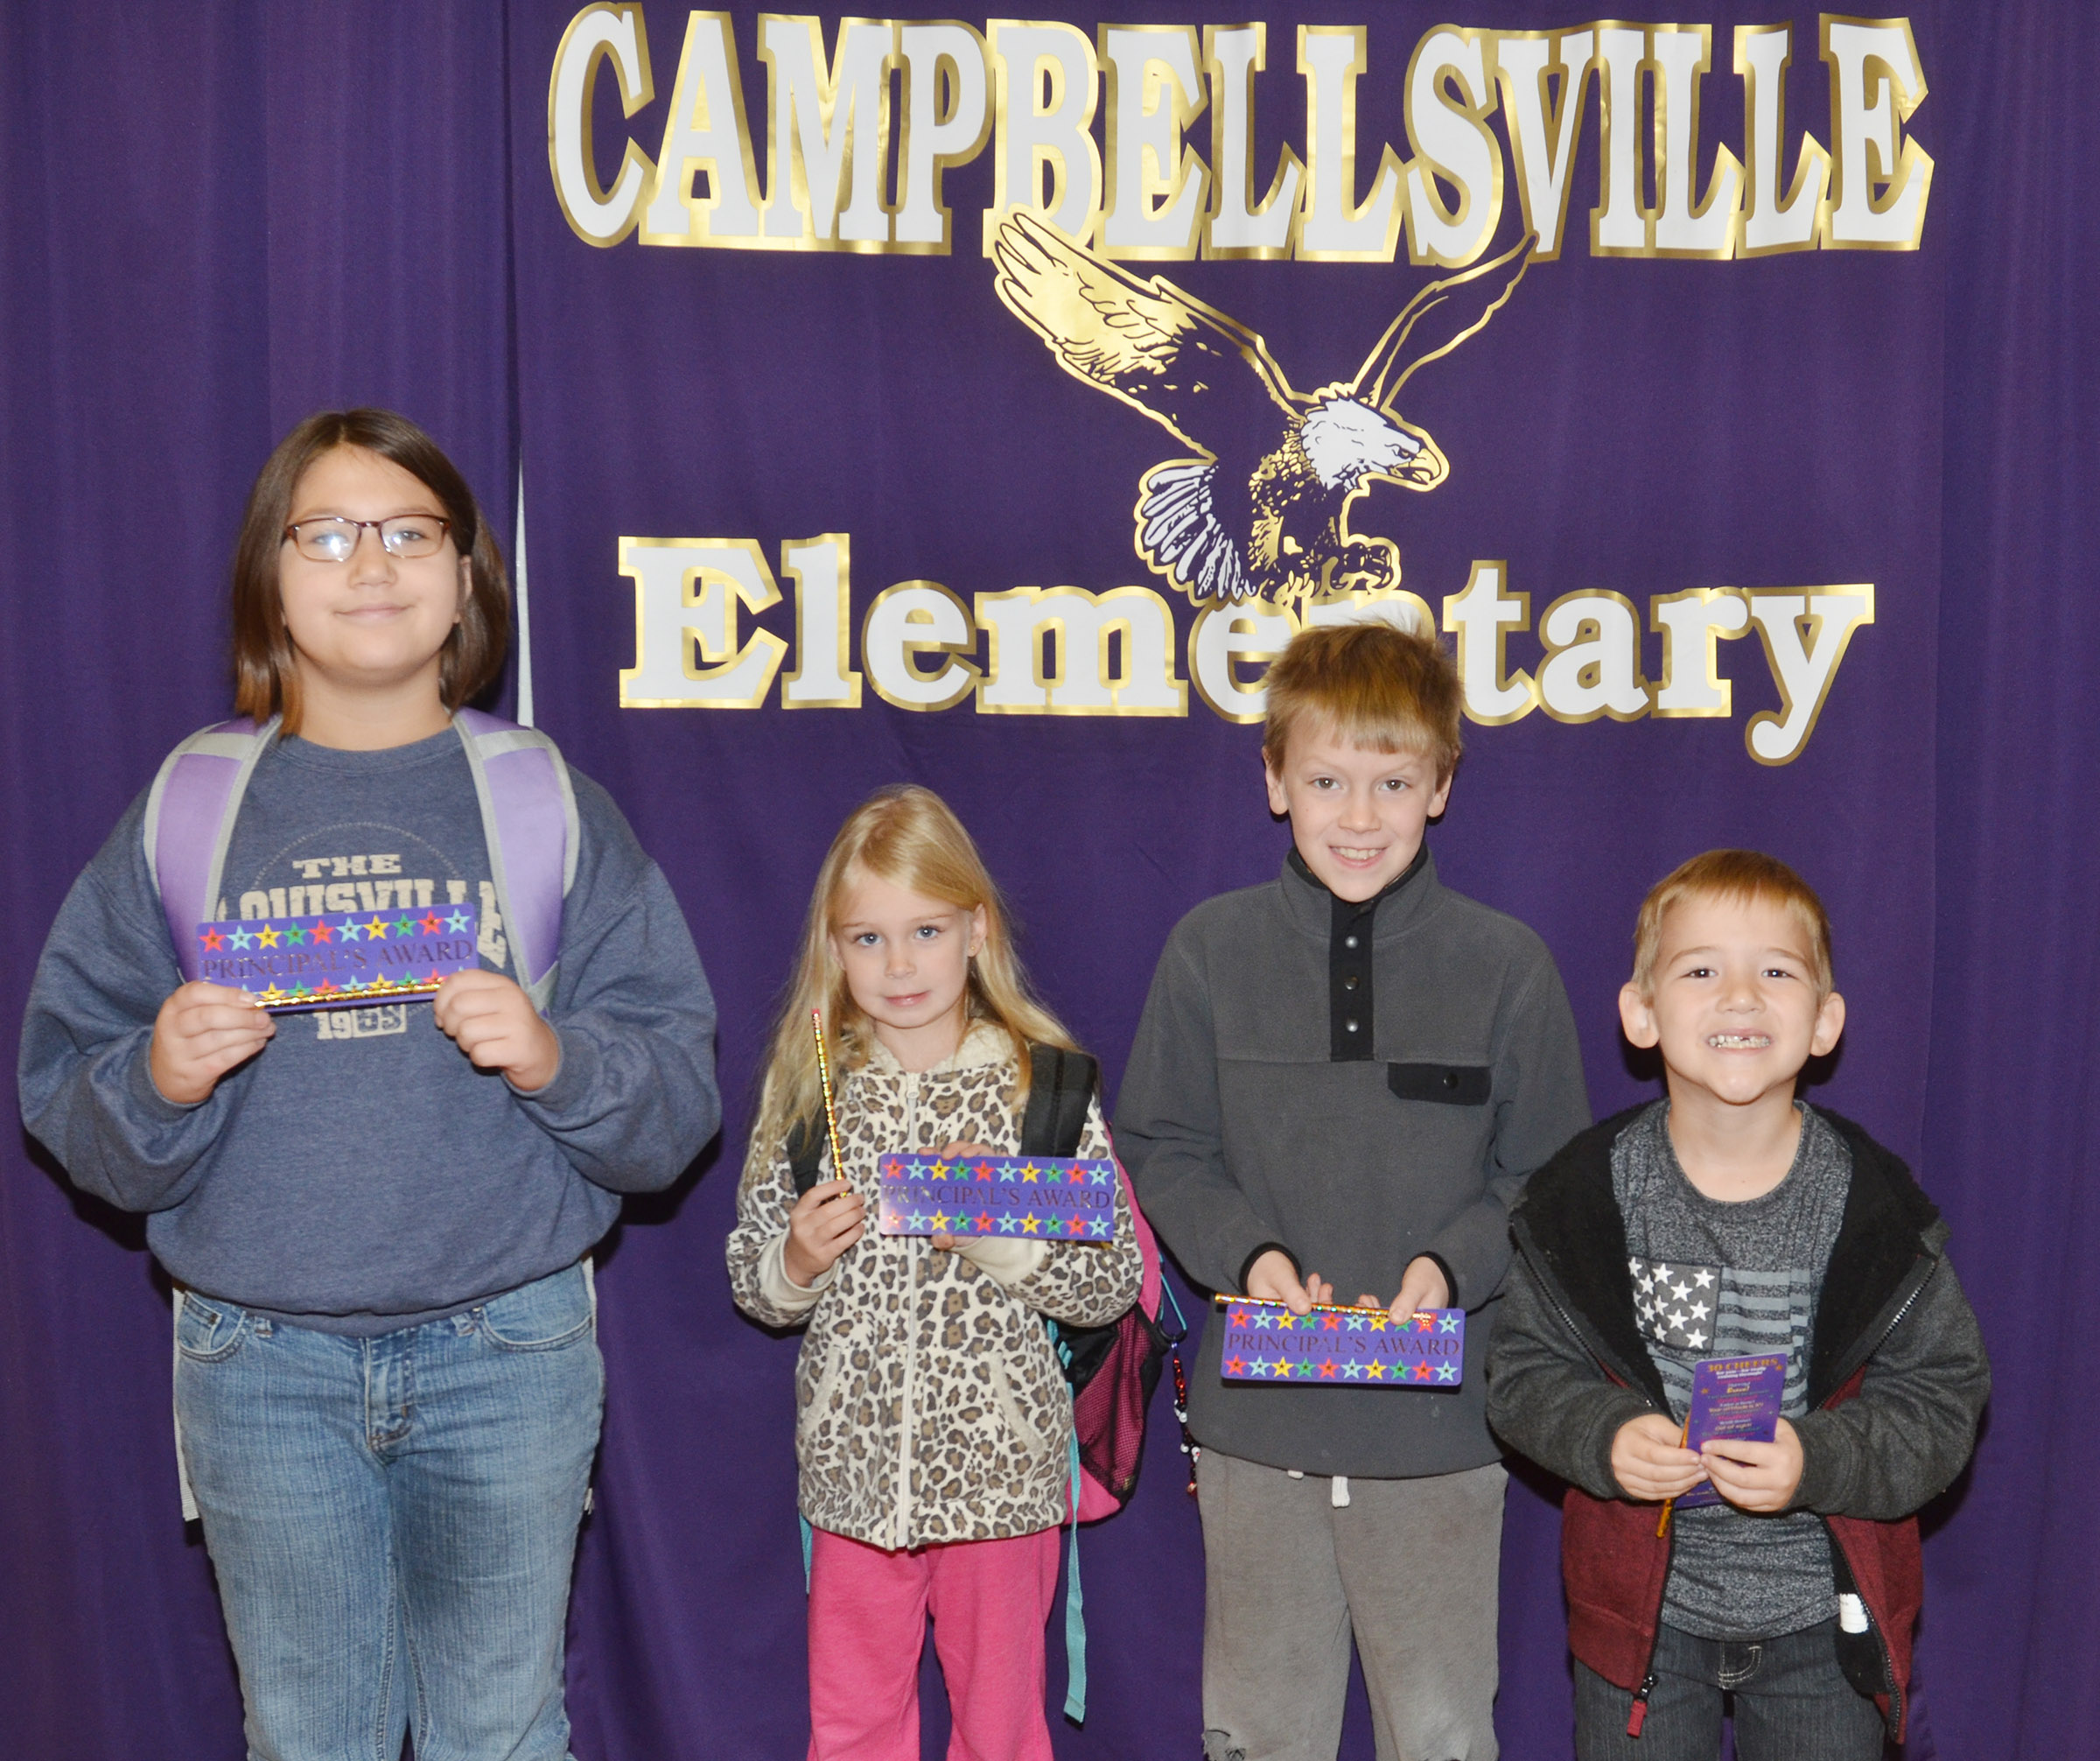 From left are fifth-grader Kylee Sowders, kindergartener Alinna Bray, fourth-grader Connor Coots and first-grader Mason Edwards. Absent from the photo are second-grader Allison Dean and third-grader Mark Lawson.